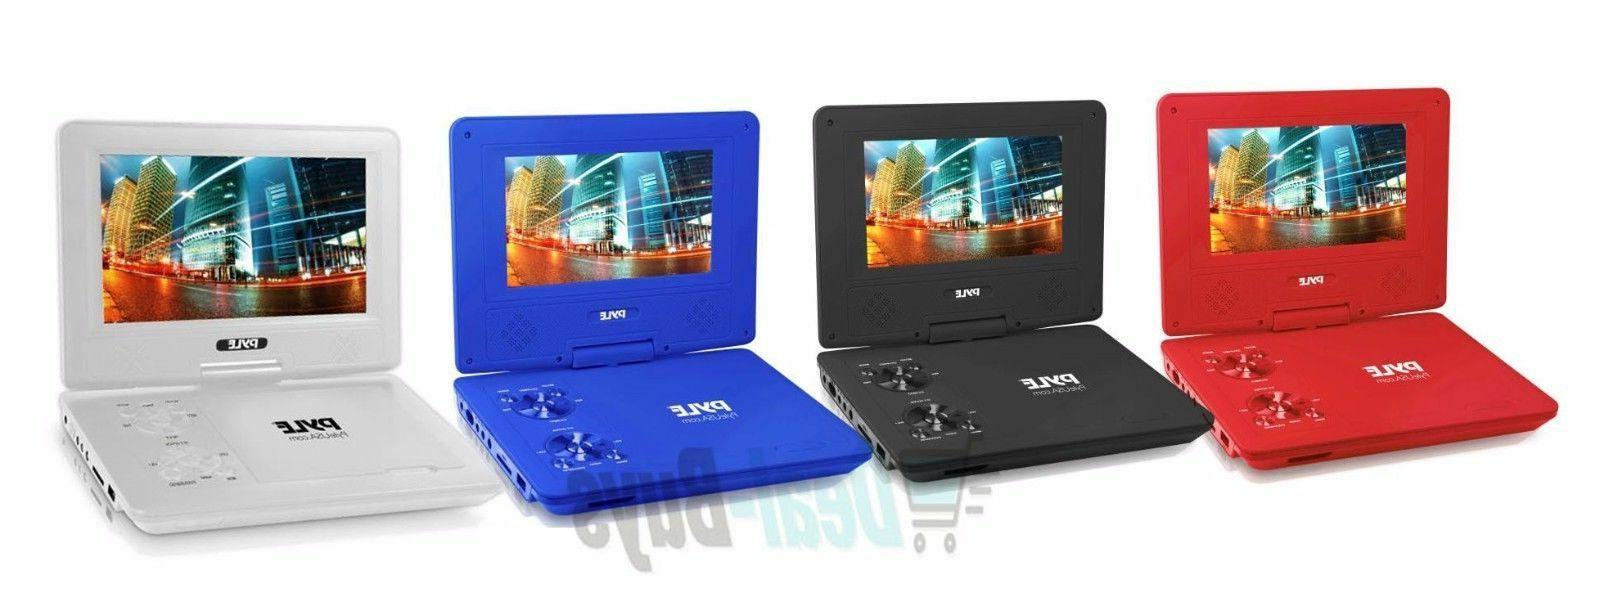 7 portable dvd player built in rechargeable